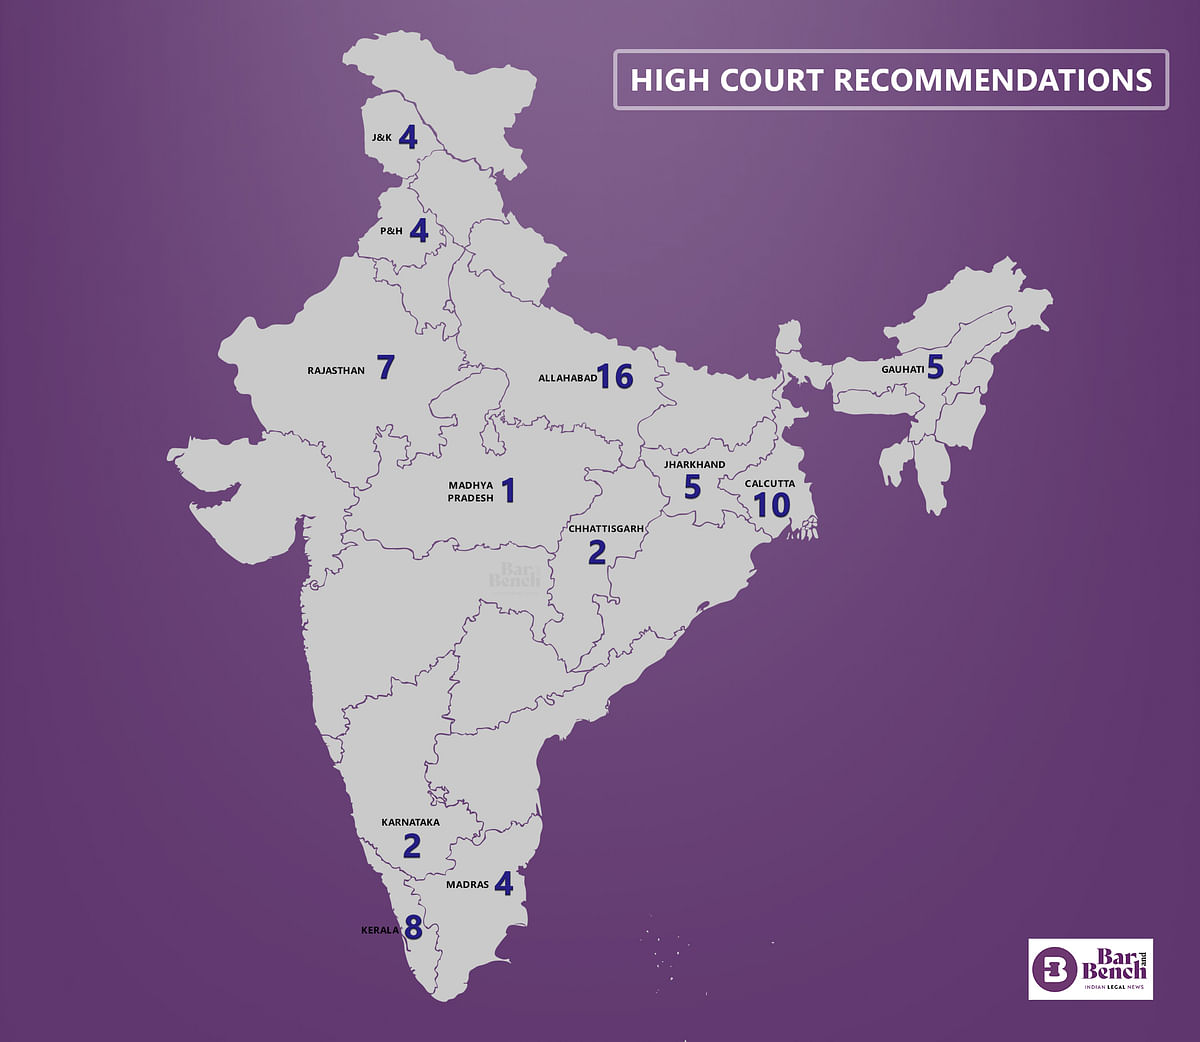 High Court recommendations